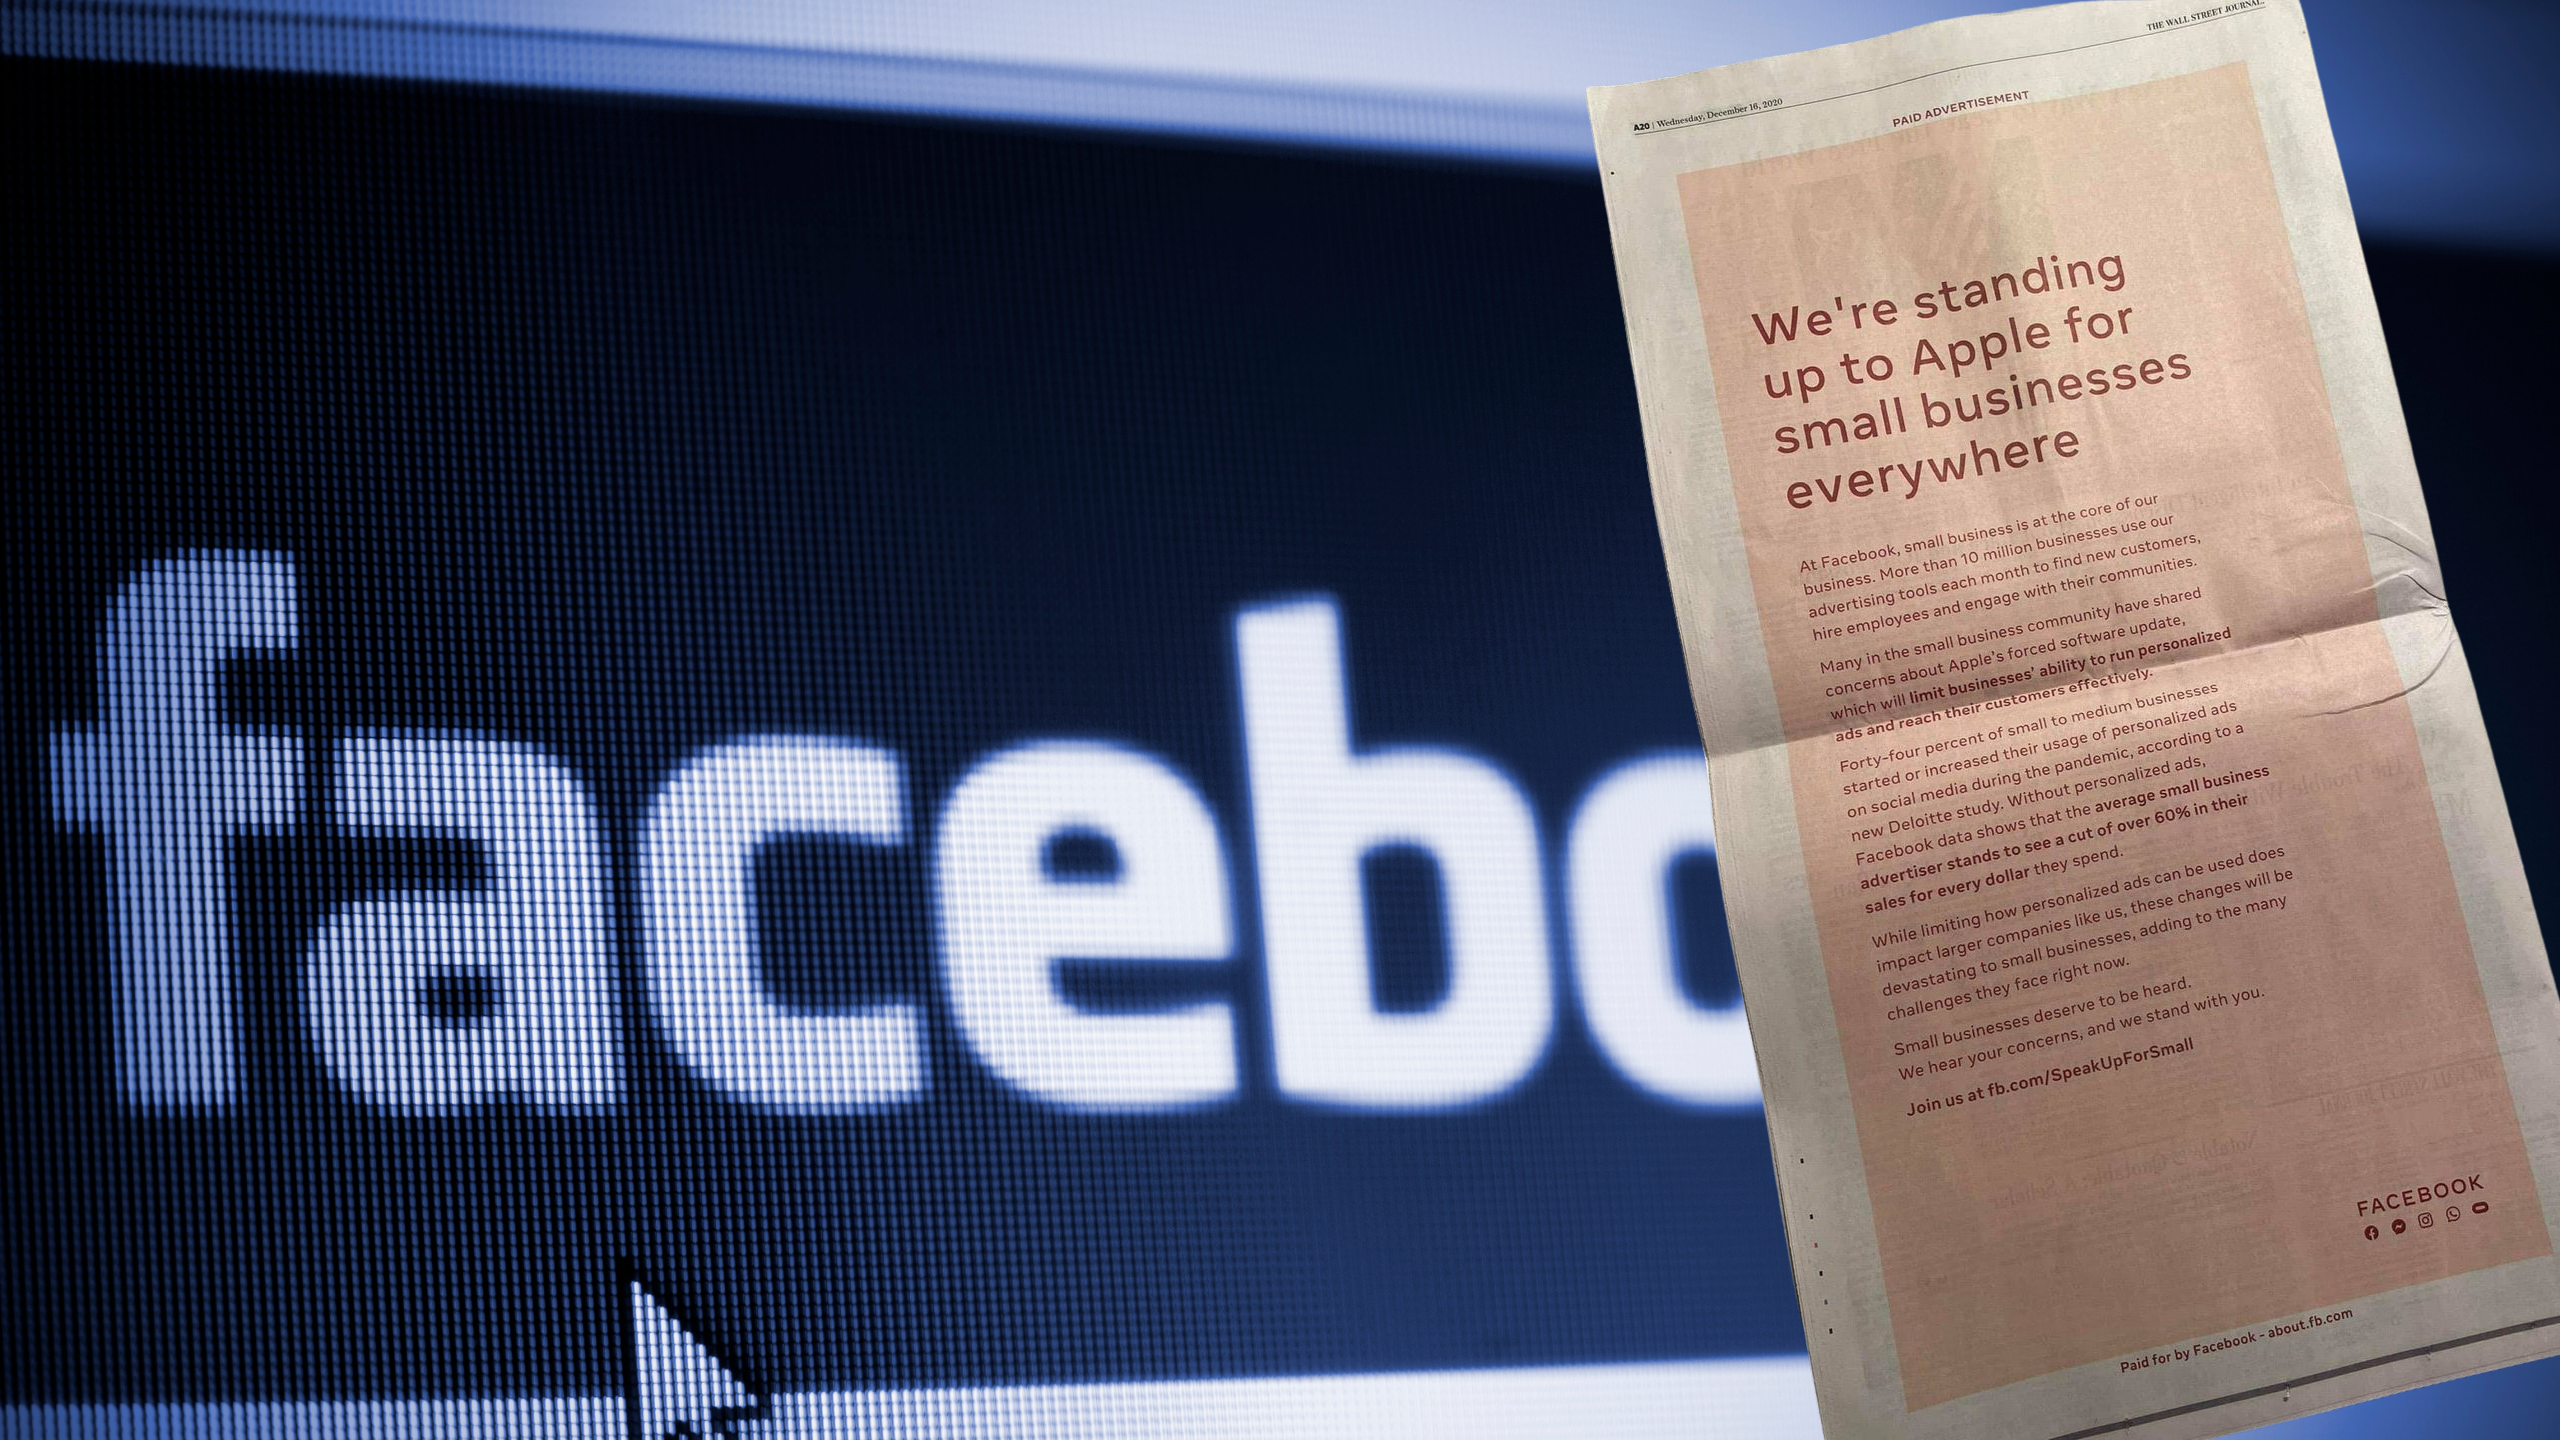 Facebook criticizes Apple's iOS privacy changes with full-page newspaper ads